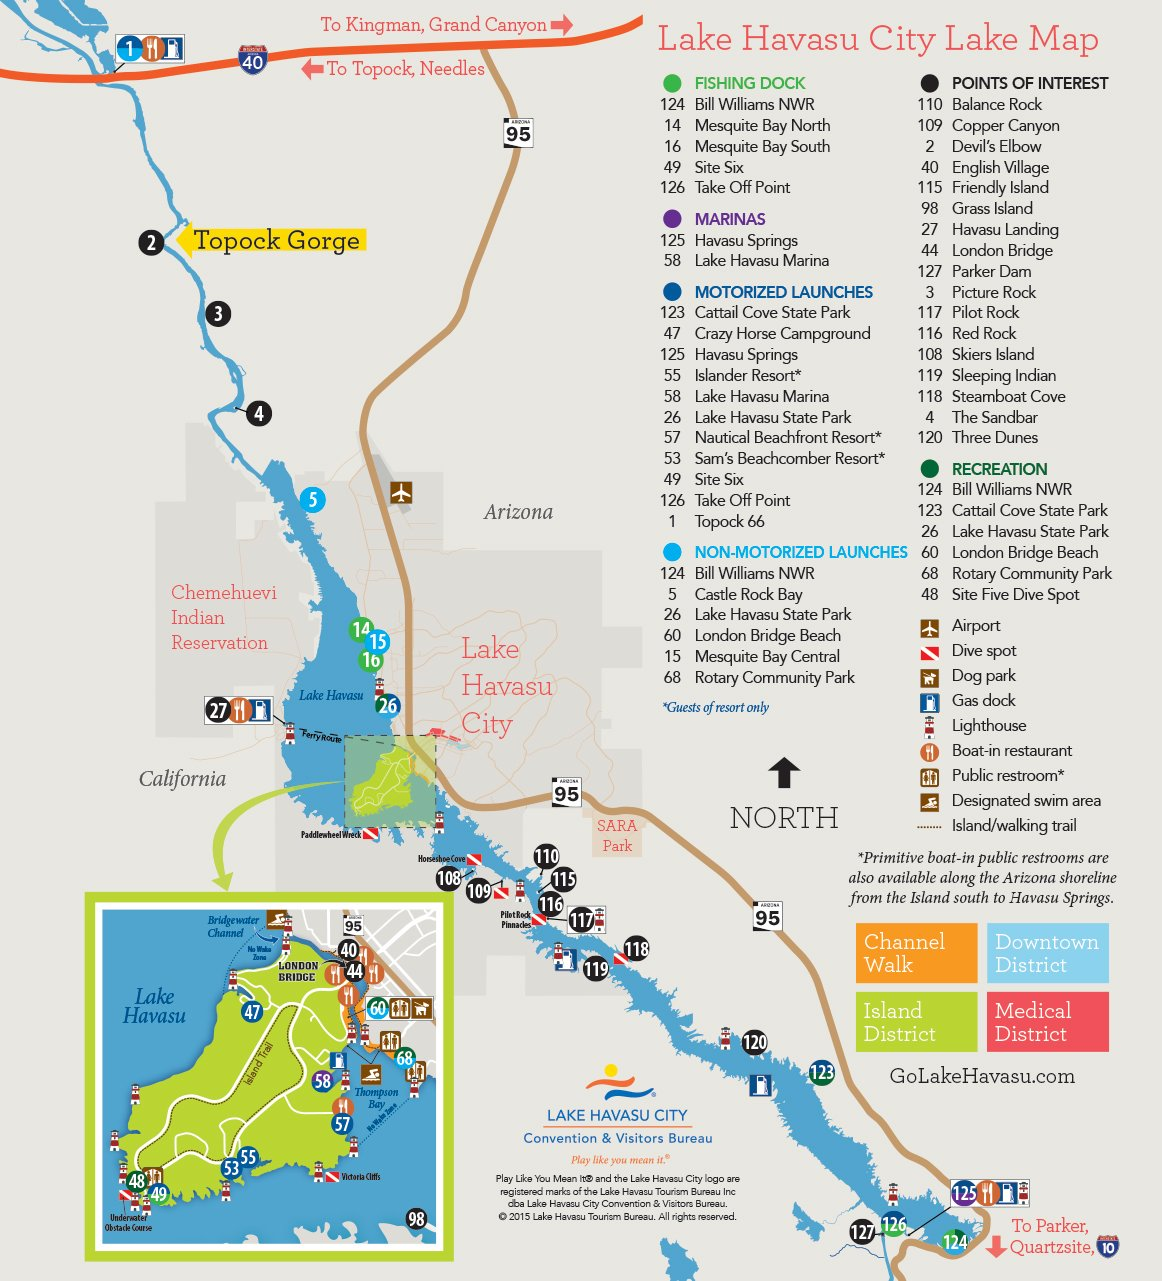 Lake Havasu City Lake Map